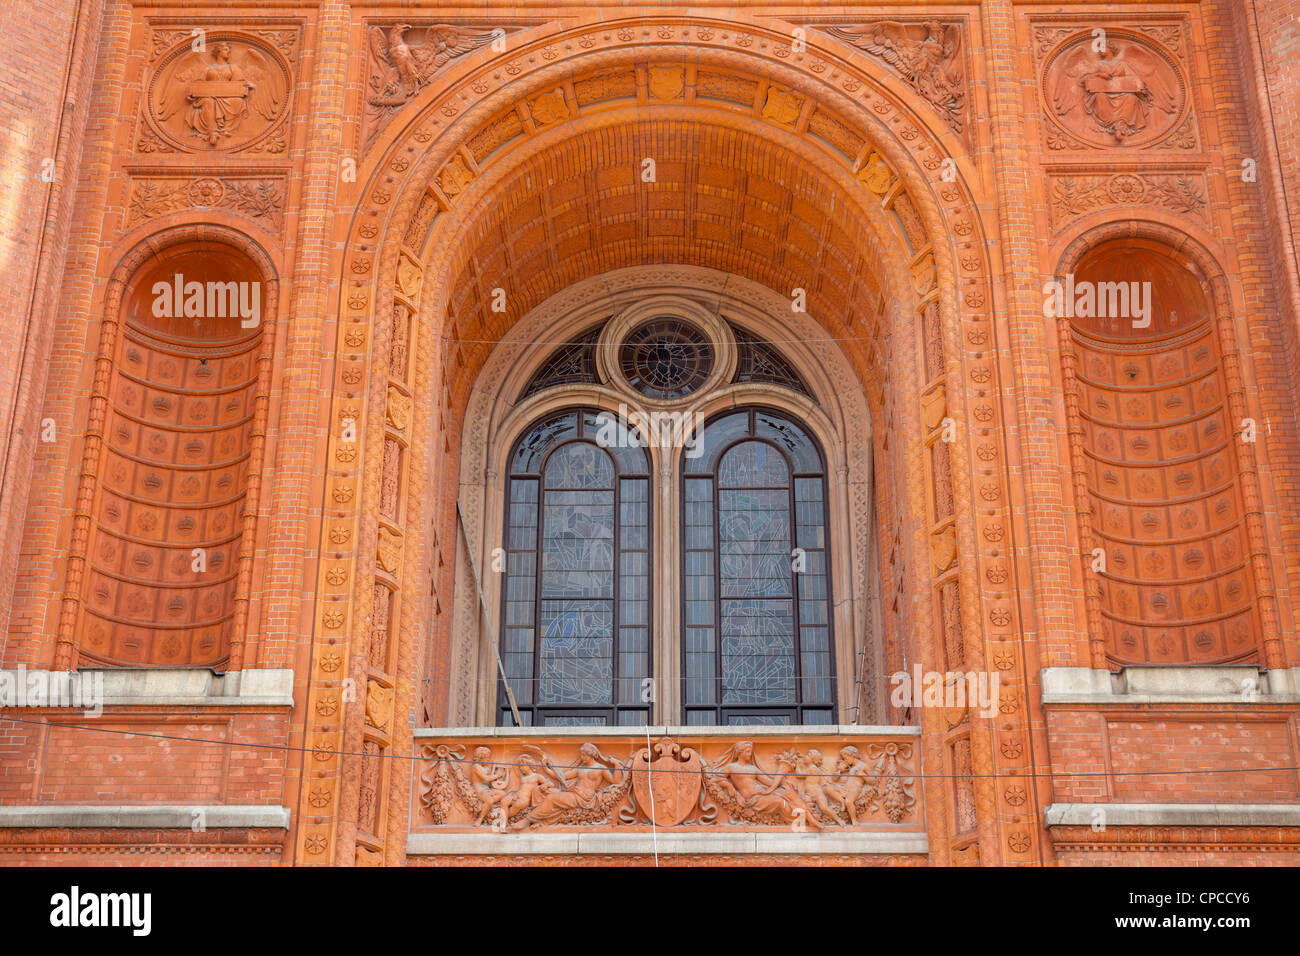 Rotes Rathaus, Berlin, Germany - Stock Image